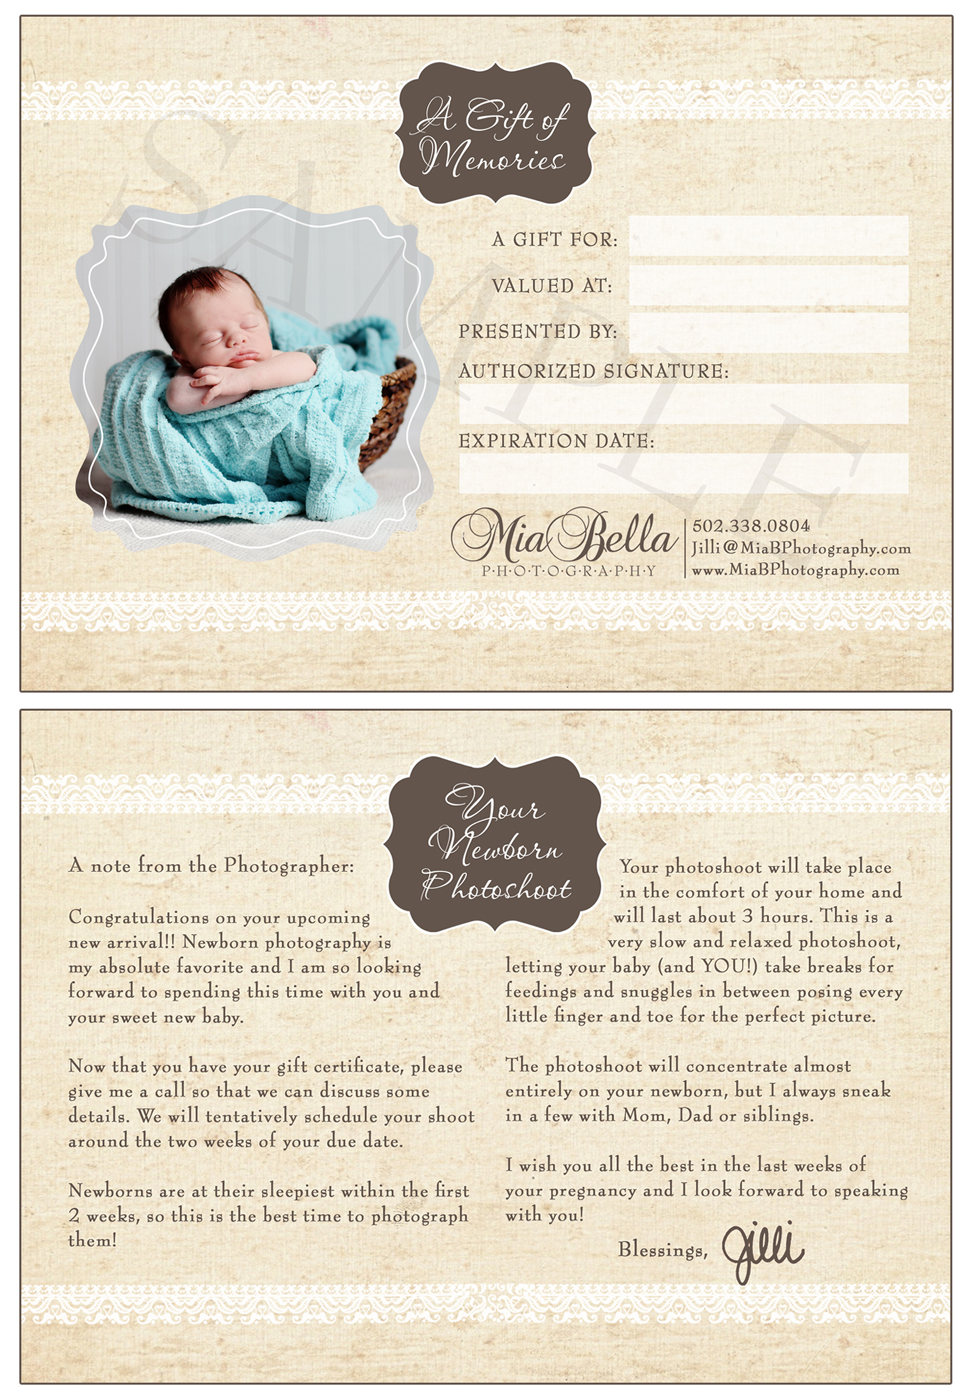 Photography Session Gift Certificate Template from 3.bp.blogspot.com